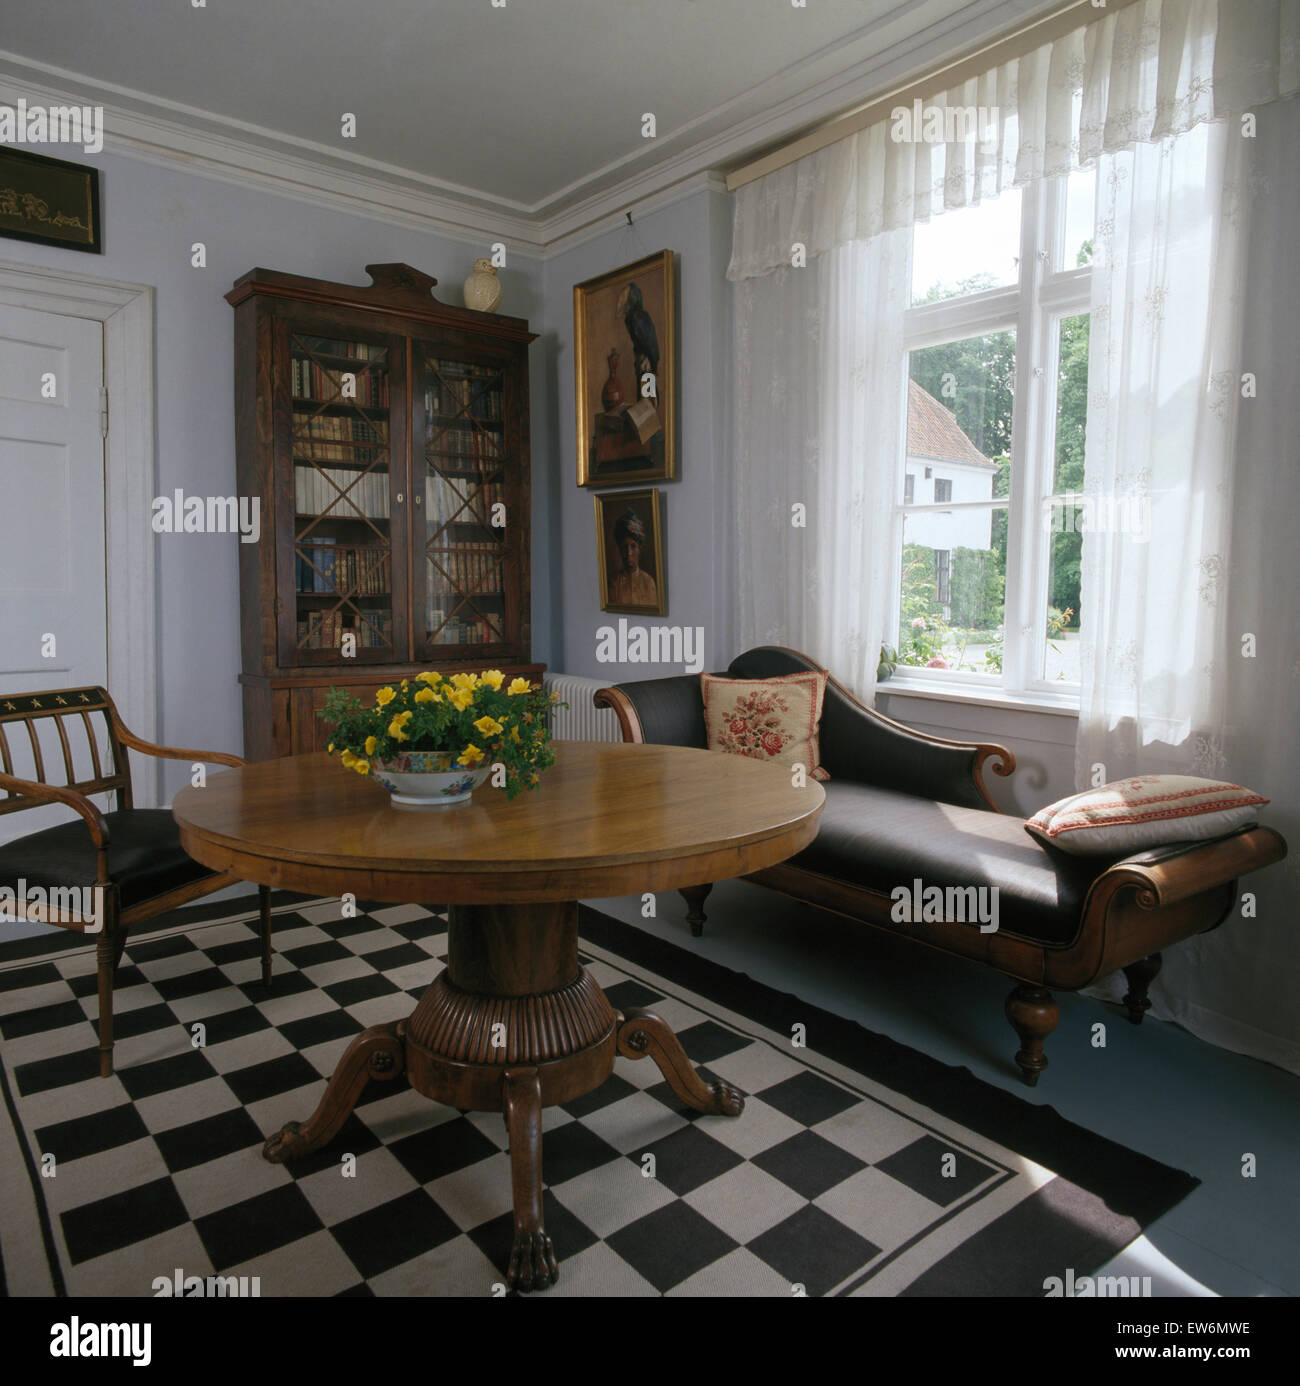 Antique chaise longue and table in Swedish dining room with black+white chequerboard rug on the floor - Stock Image